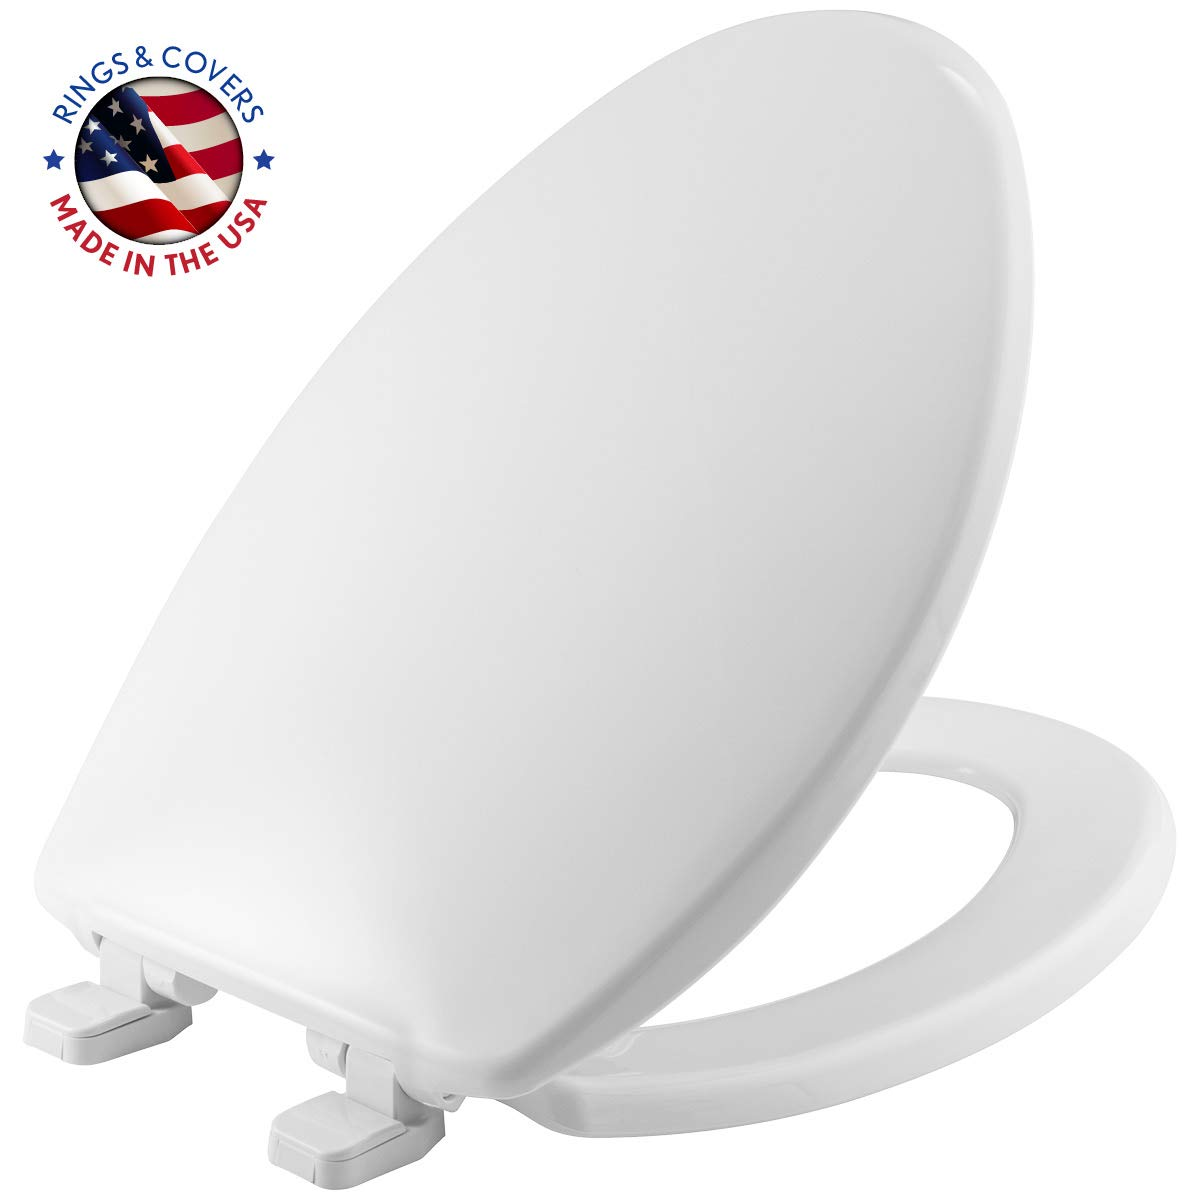 MAYFAIR 1880SLOW 000 Toilet Seat will Slowly Close and Never Loosen, ELONGATED, Long Lasting Plastic, White